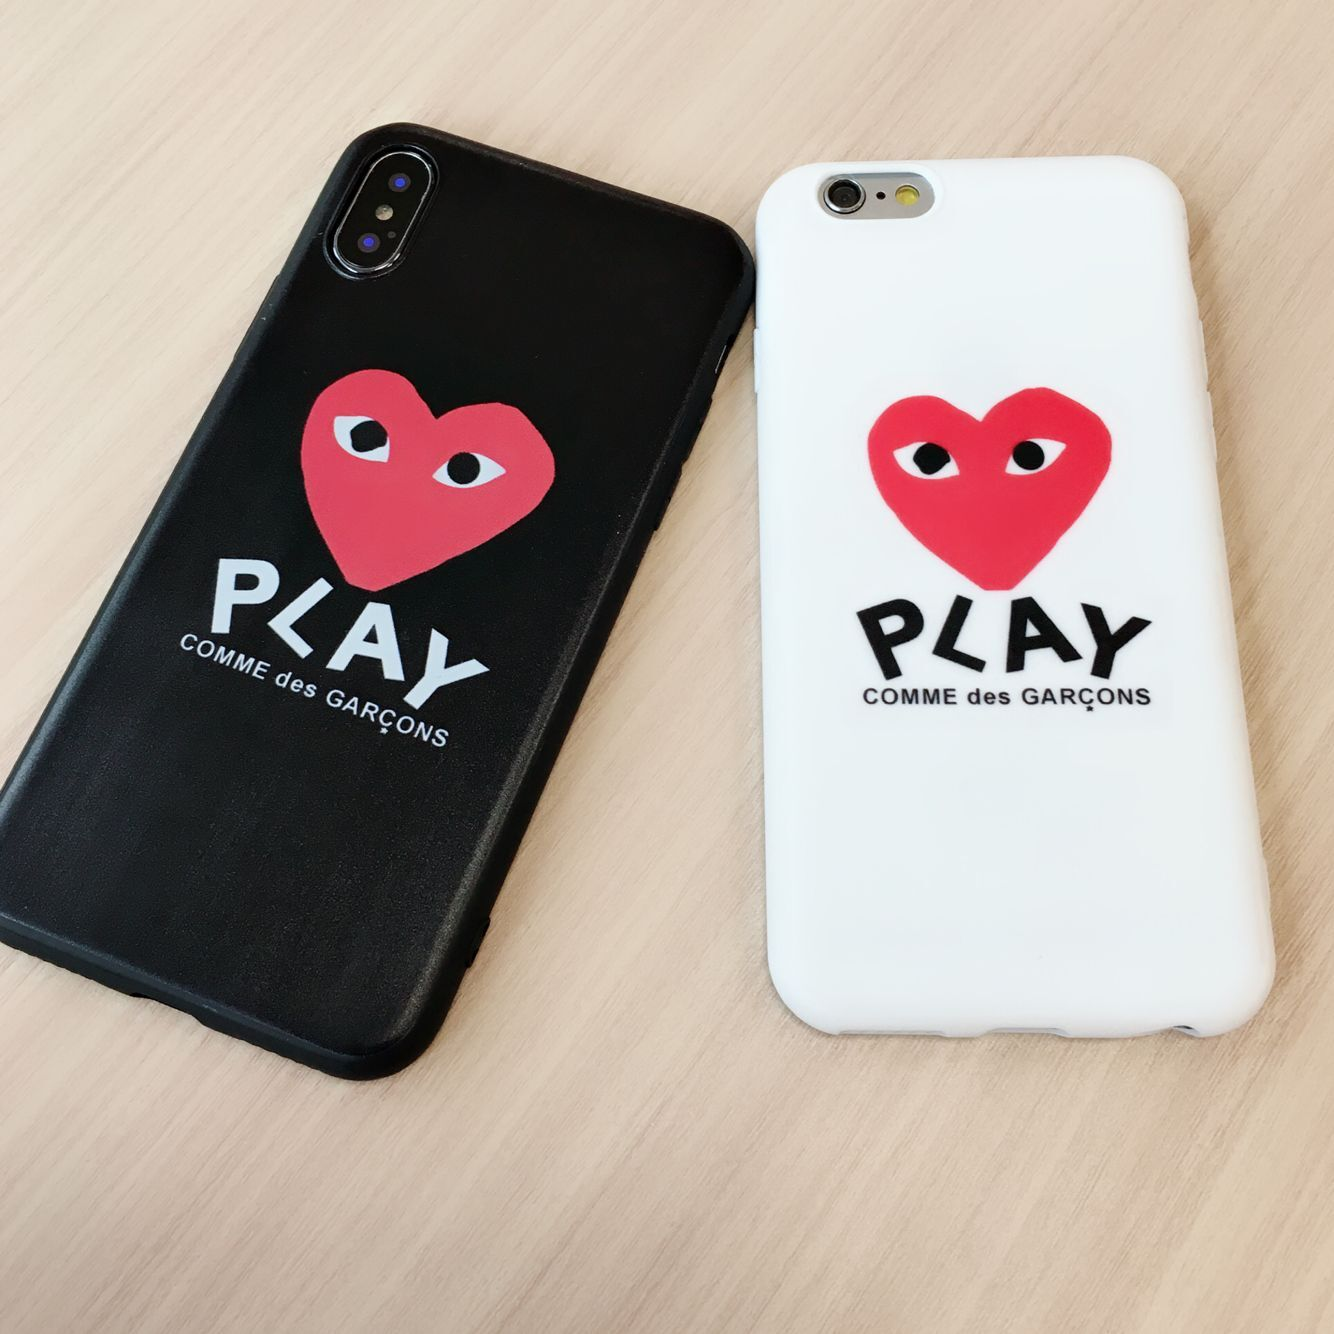 half off 0ae5a 3a7c6 US $2.15 |Japan Comme des GARCONS play phone case for iPhone X XS Max XR 6  6S 7 8 Plus shell for Samsung Galaxy S8 S9 Plus Note 8 9 cover-in Fitted ...